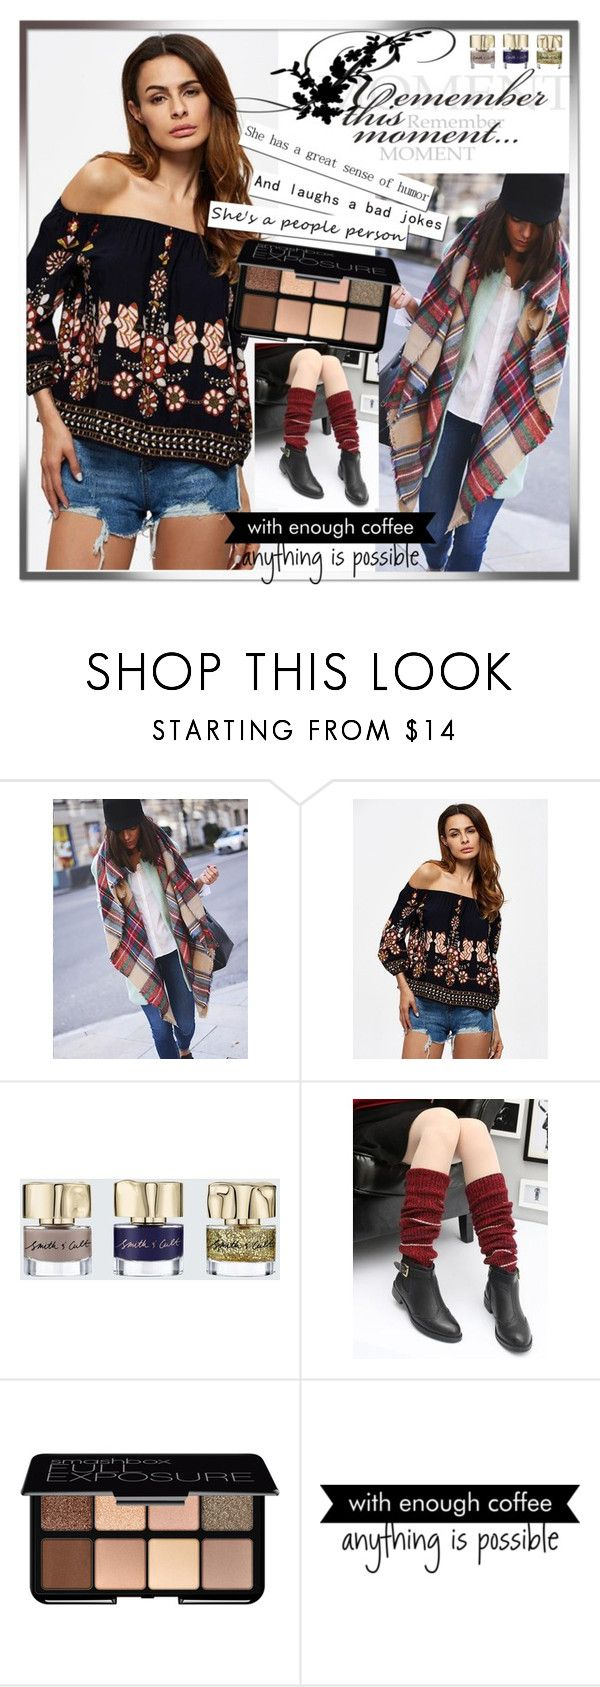 """""""http://www.oshoplive.com 2 / 20"""" by ozil1982 ❤ liked on Polyvore featuring Smith & Cult, Smashbox and WALL"""